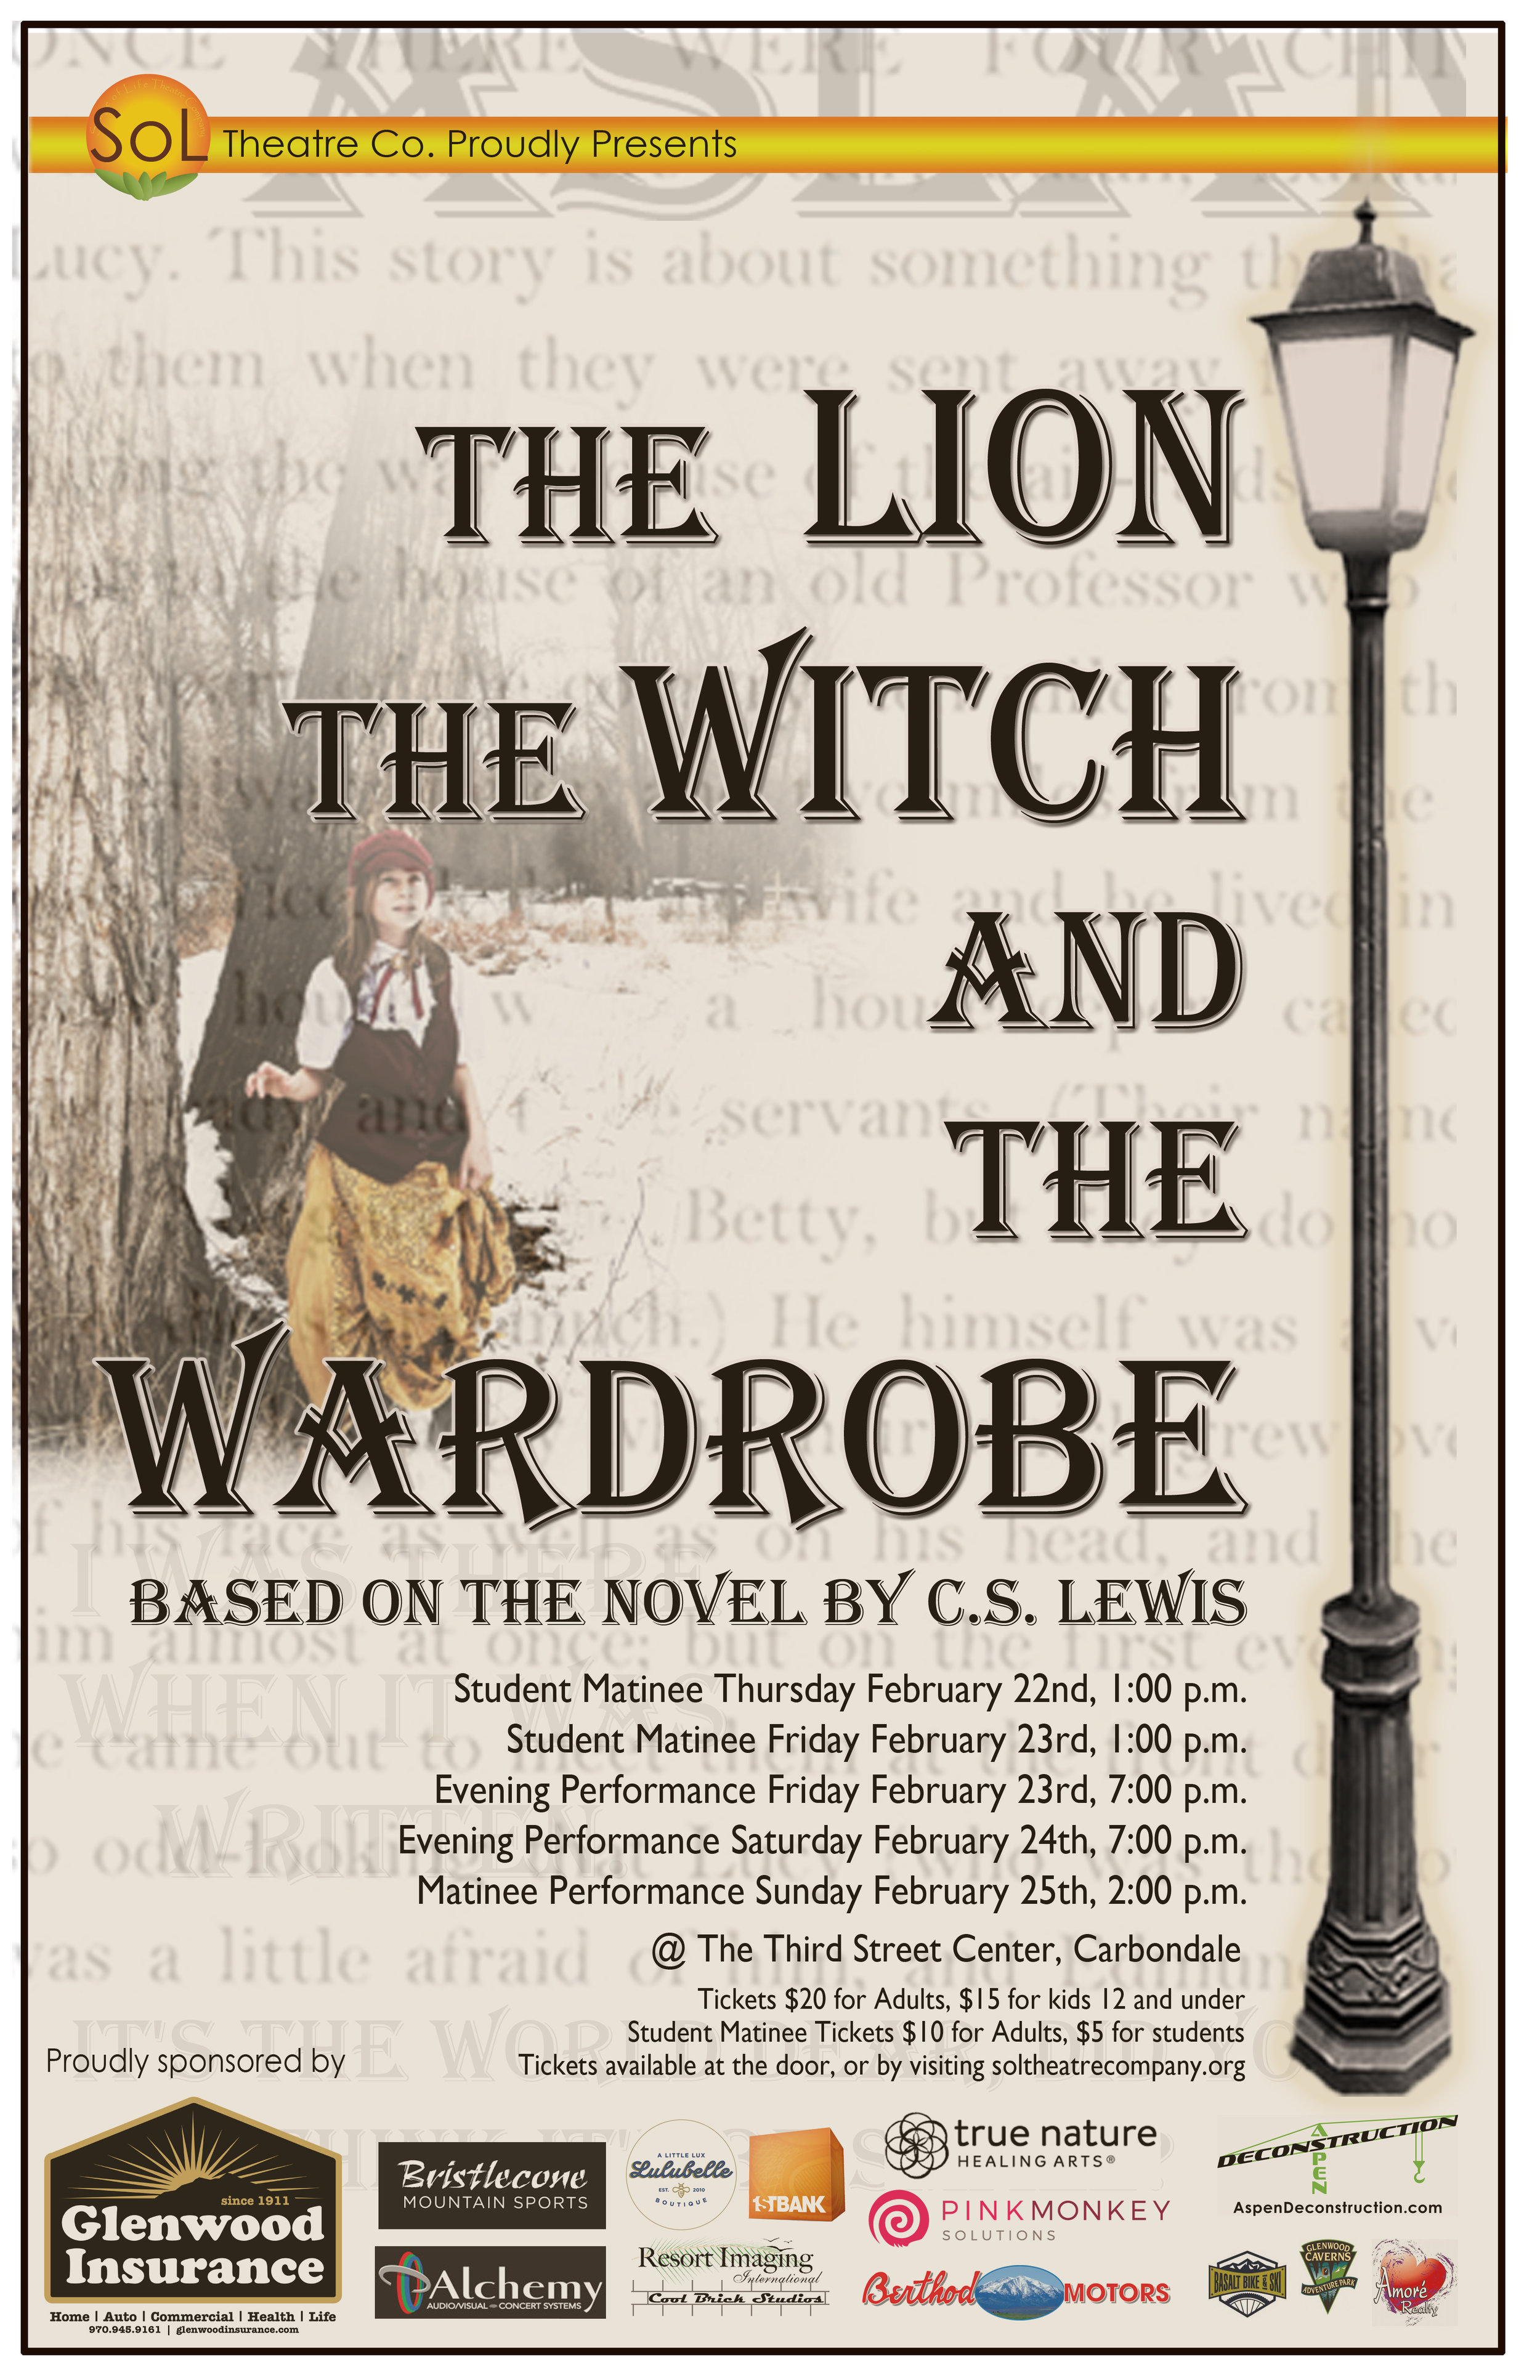 The Lion The Witch and The Wardrobe    February 22nd - 25th   Four kids travel through a wardrobe to the land of Narnia and learn of their destiny to free it with the guidance of a mystical lion.